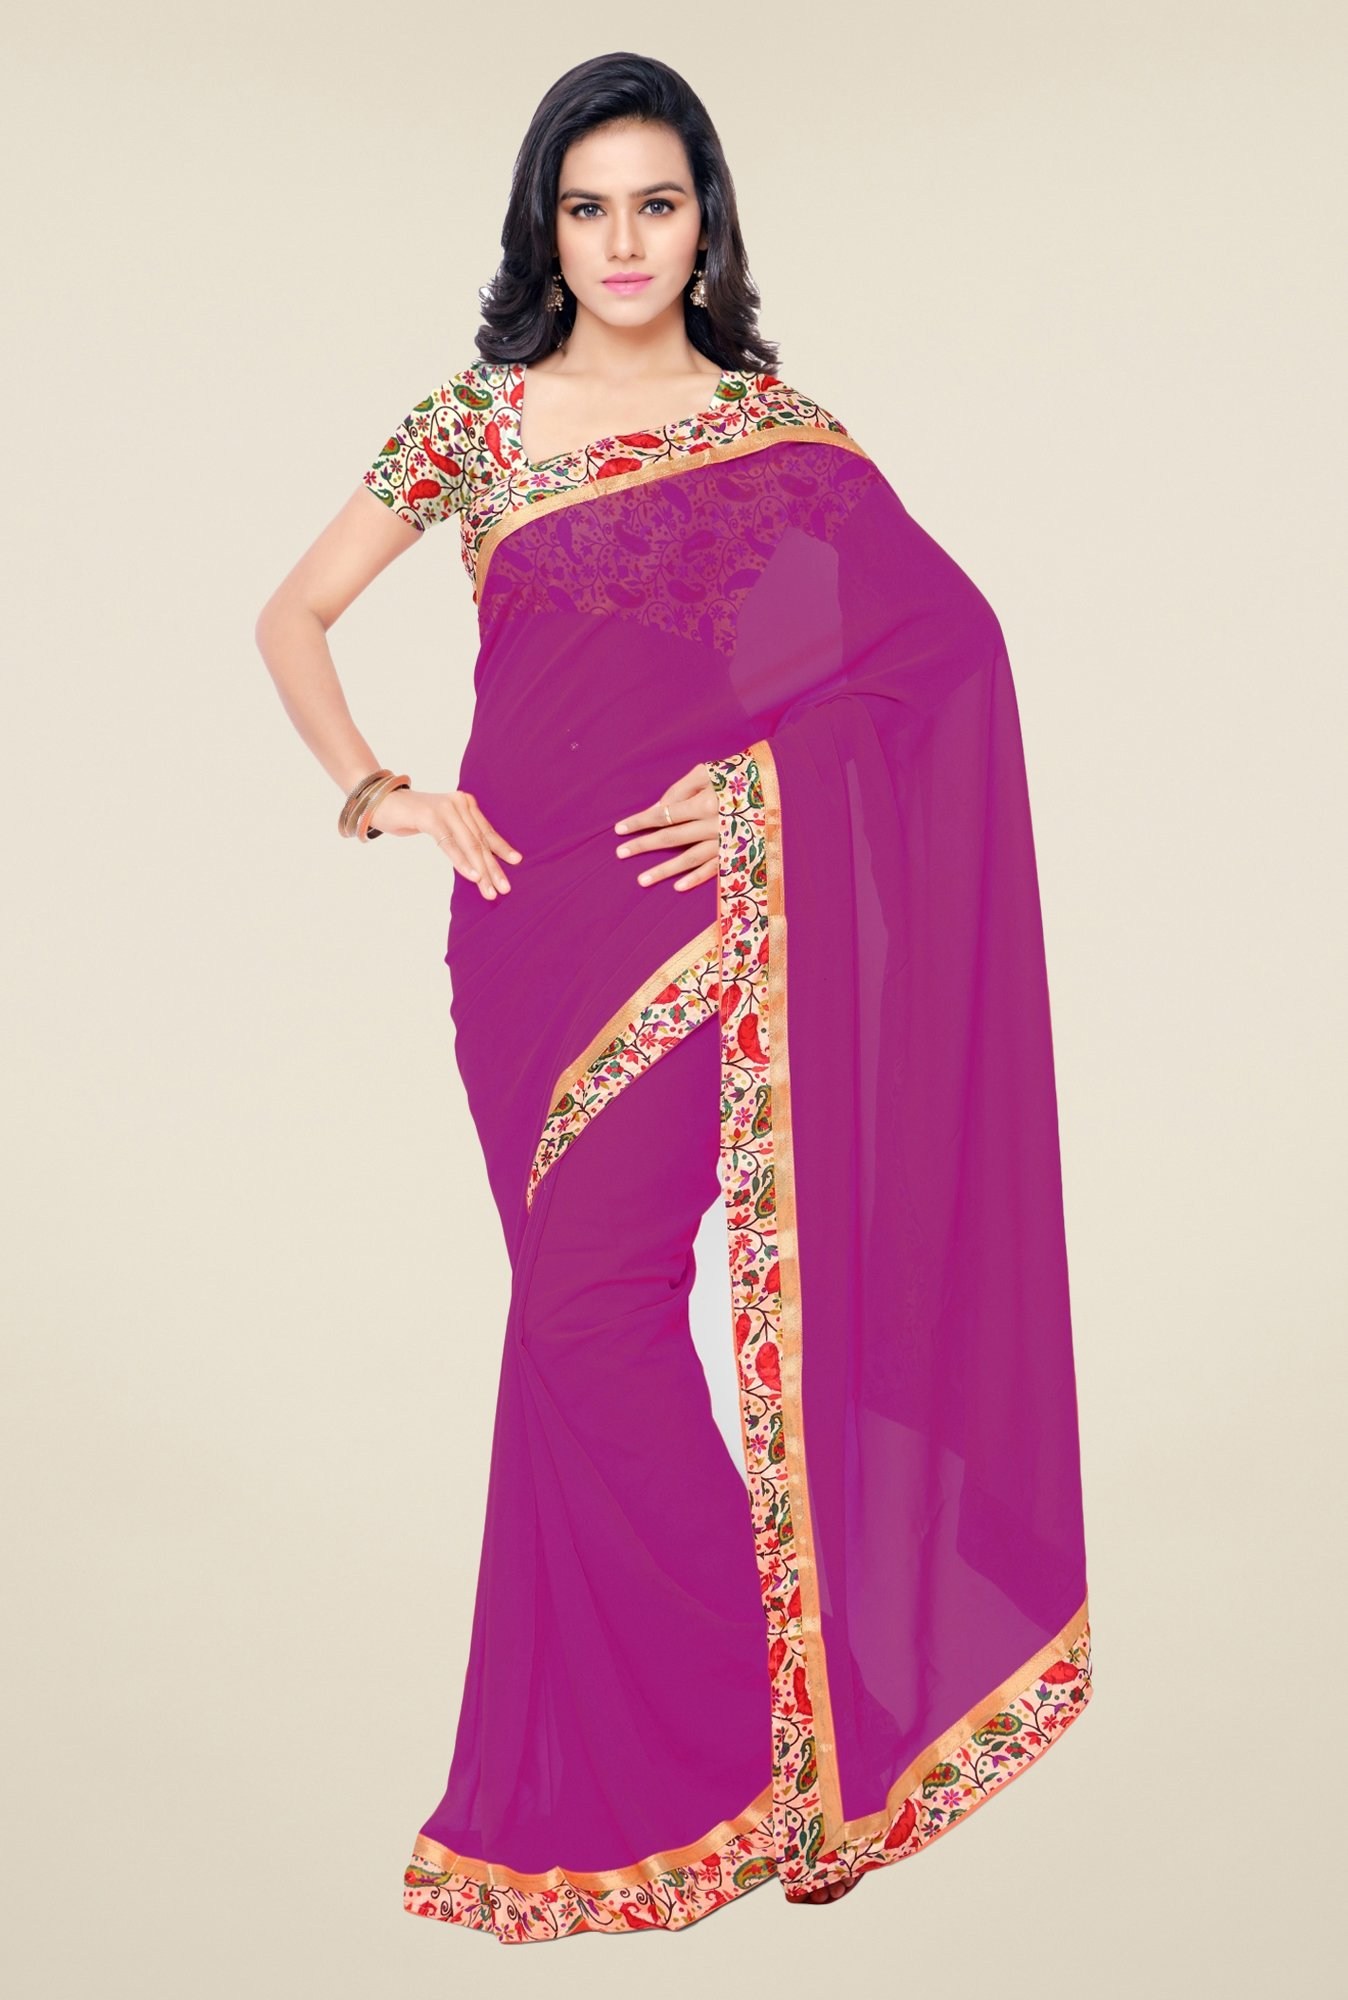 Triveni Purple Solid Faux Georgette Saree